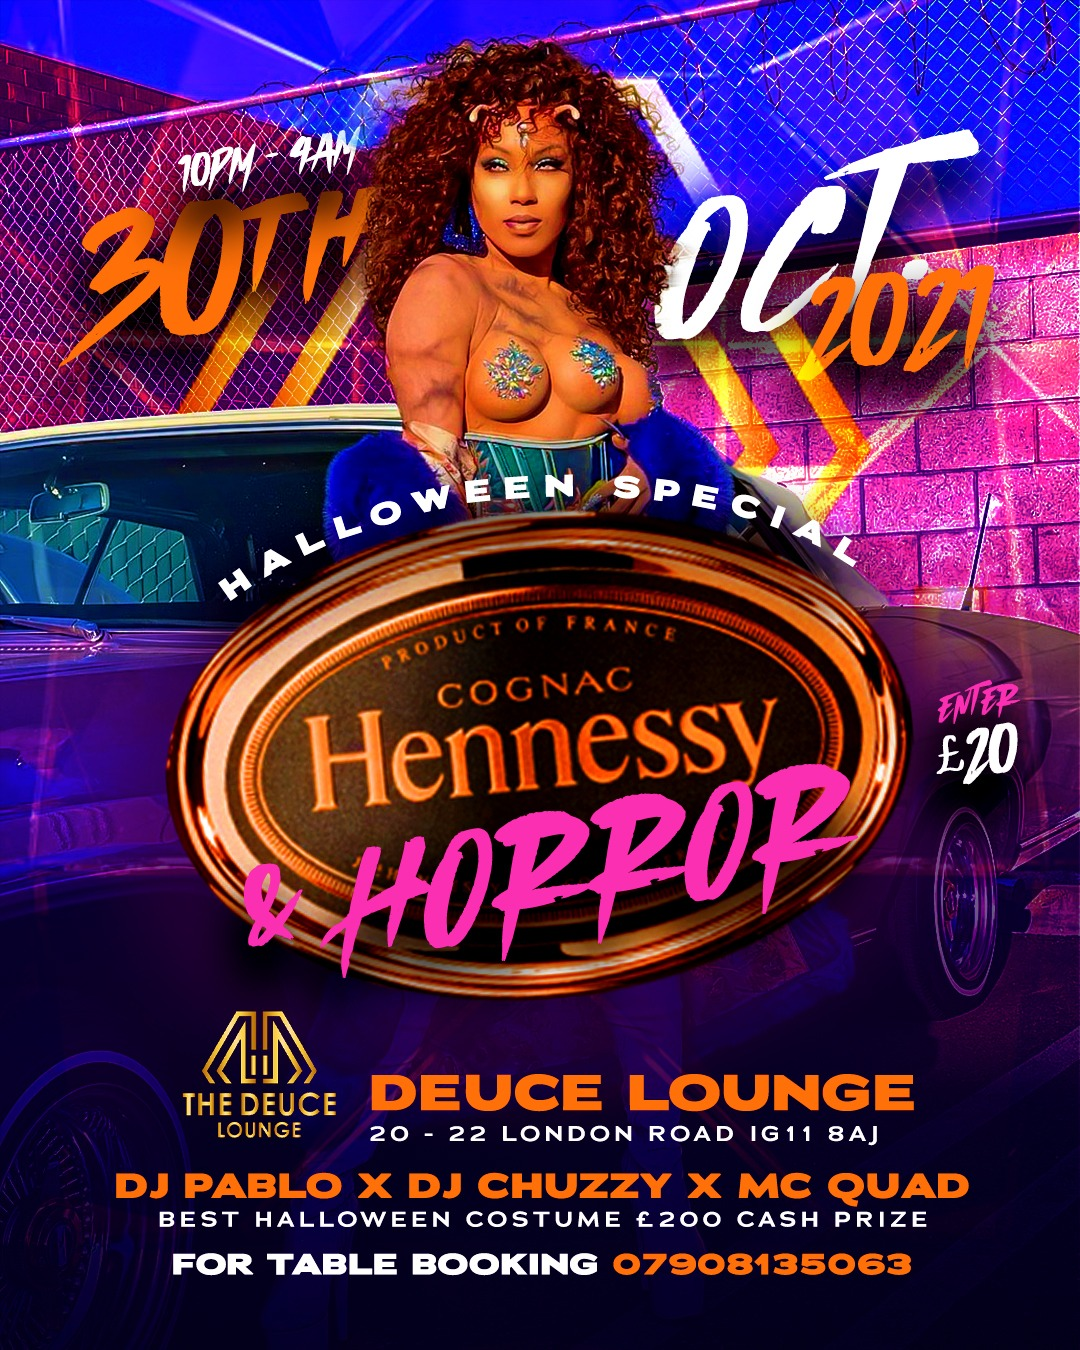 HENNESSY & HORROR HALLOWEEN SATURDAY AT DEUCE LOUNGE 30TH OF OCTOBER